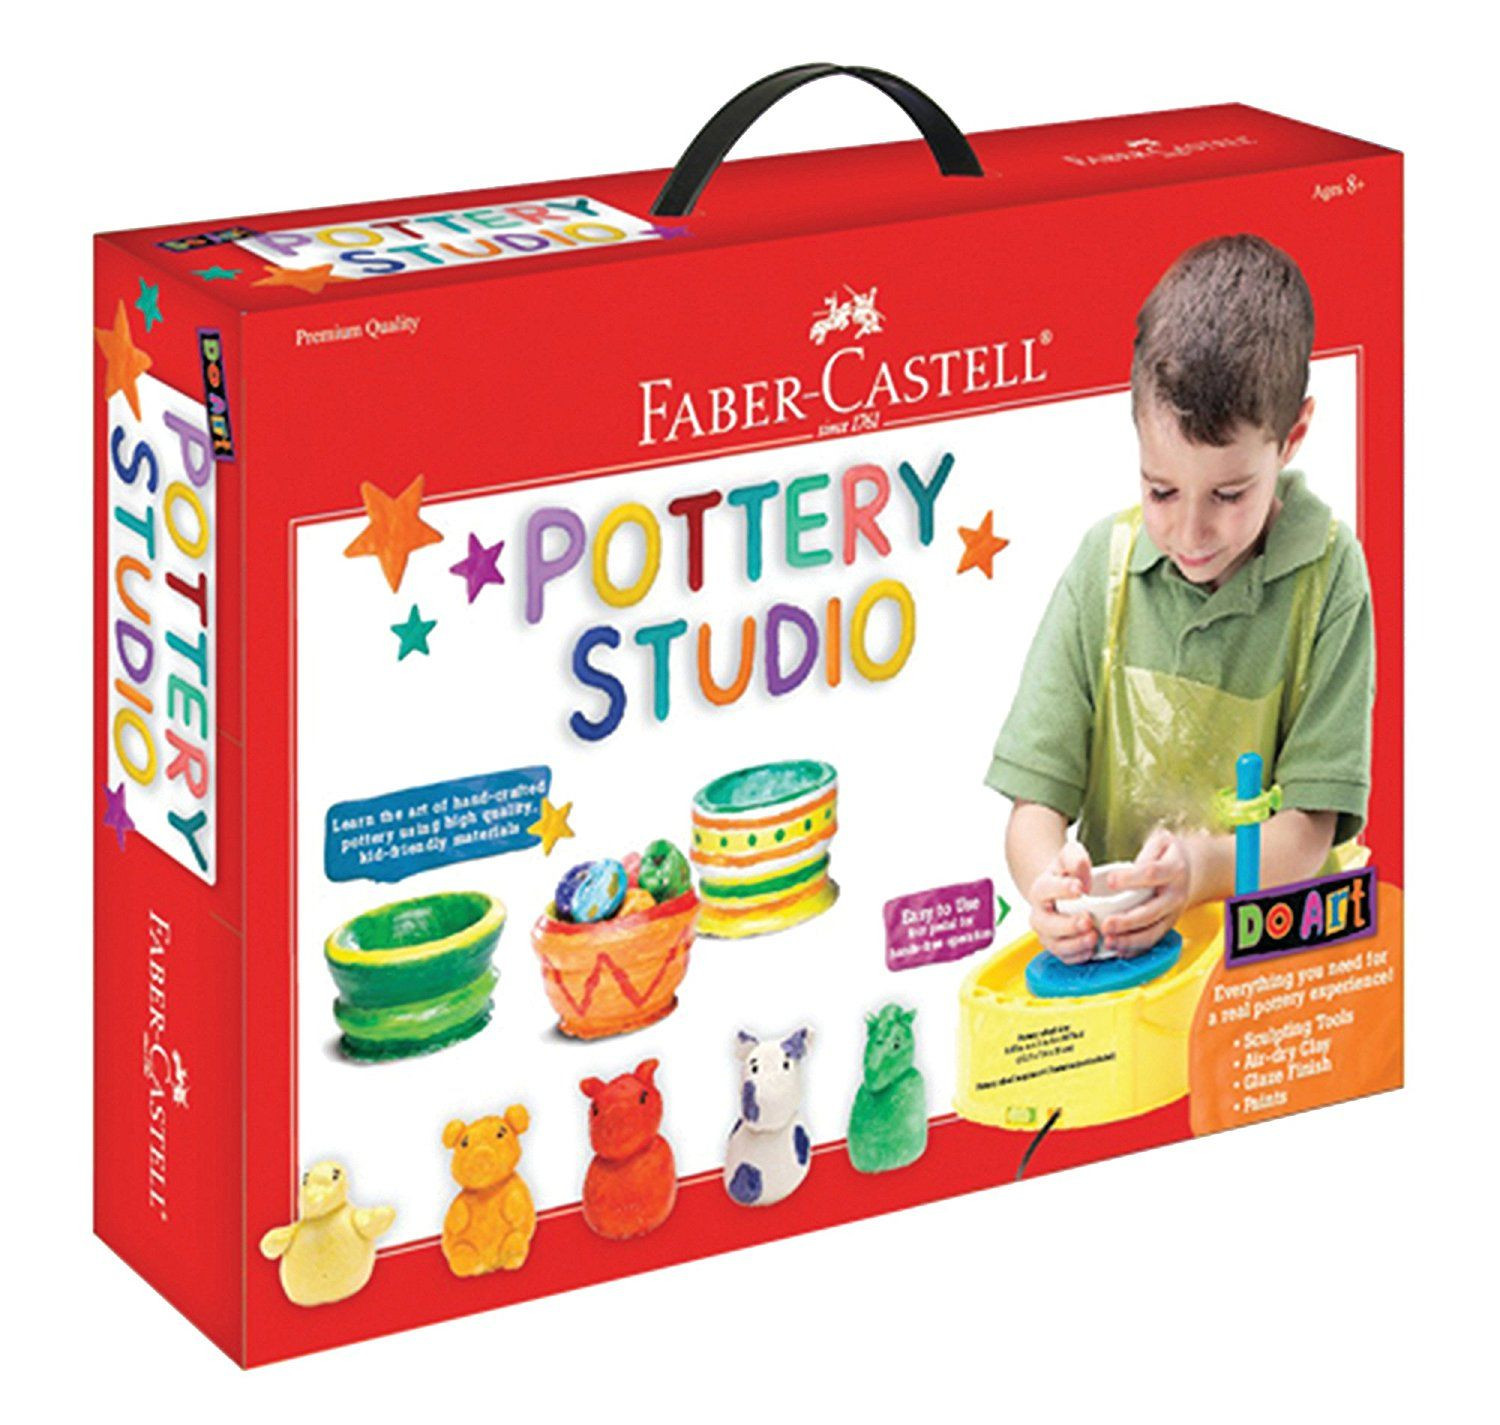 Art Kit For Toddlers  12 Best Art & Craft Kits for Kids in 2018 Kids Arts and